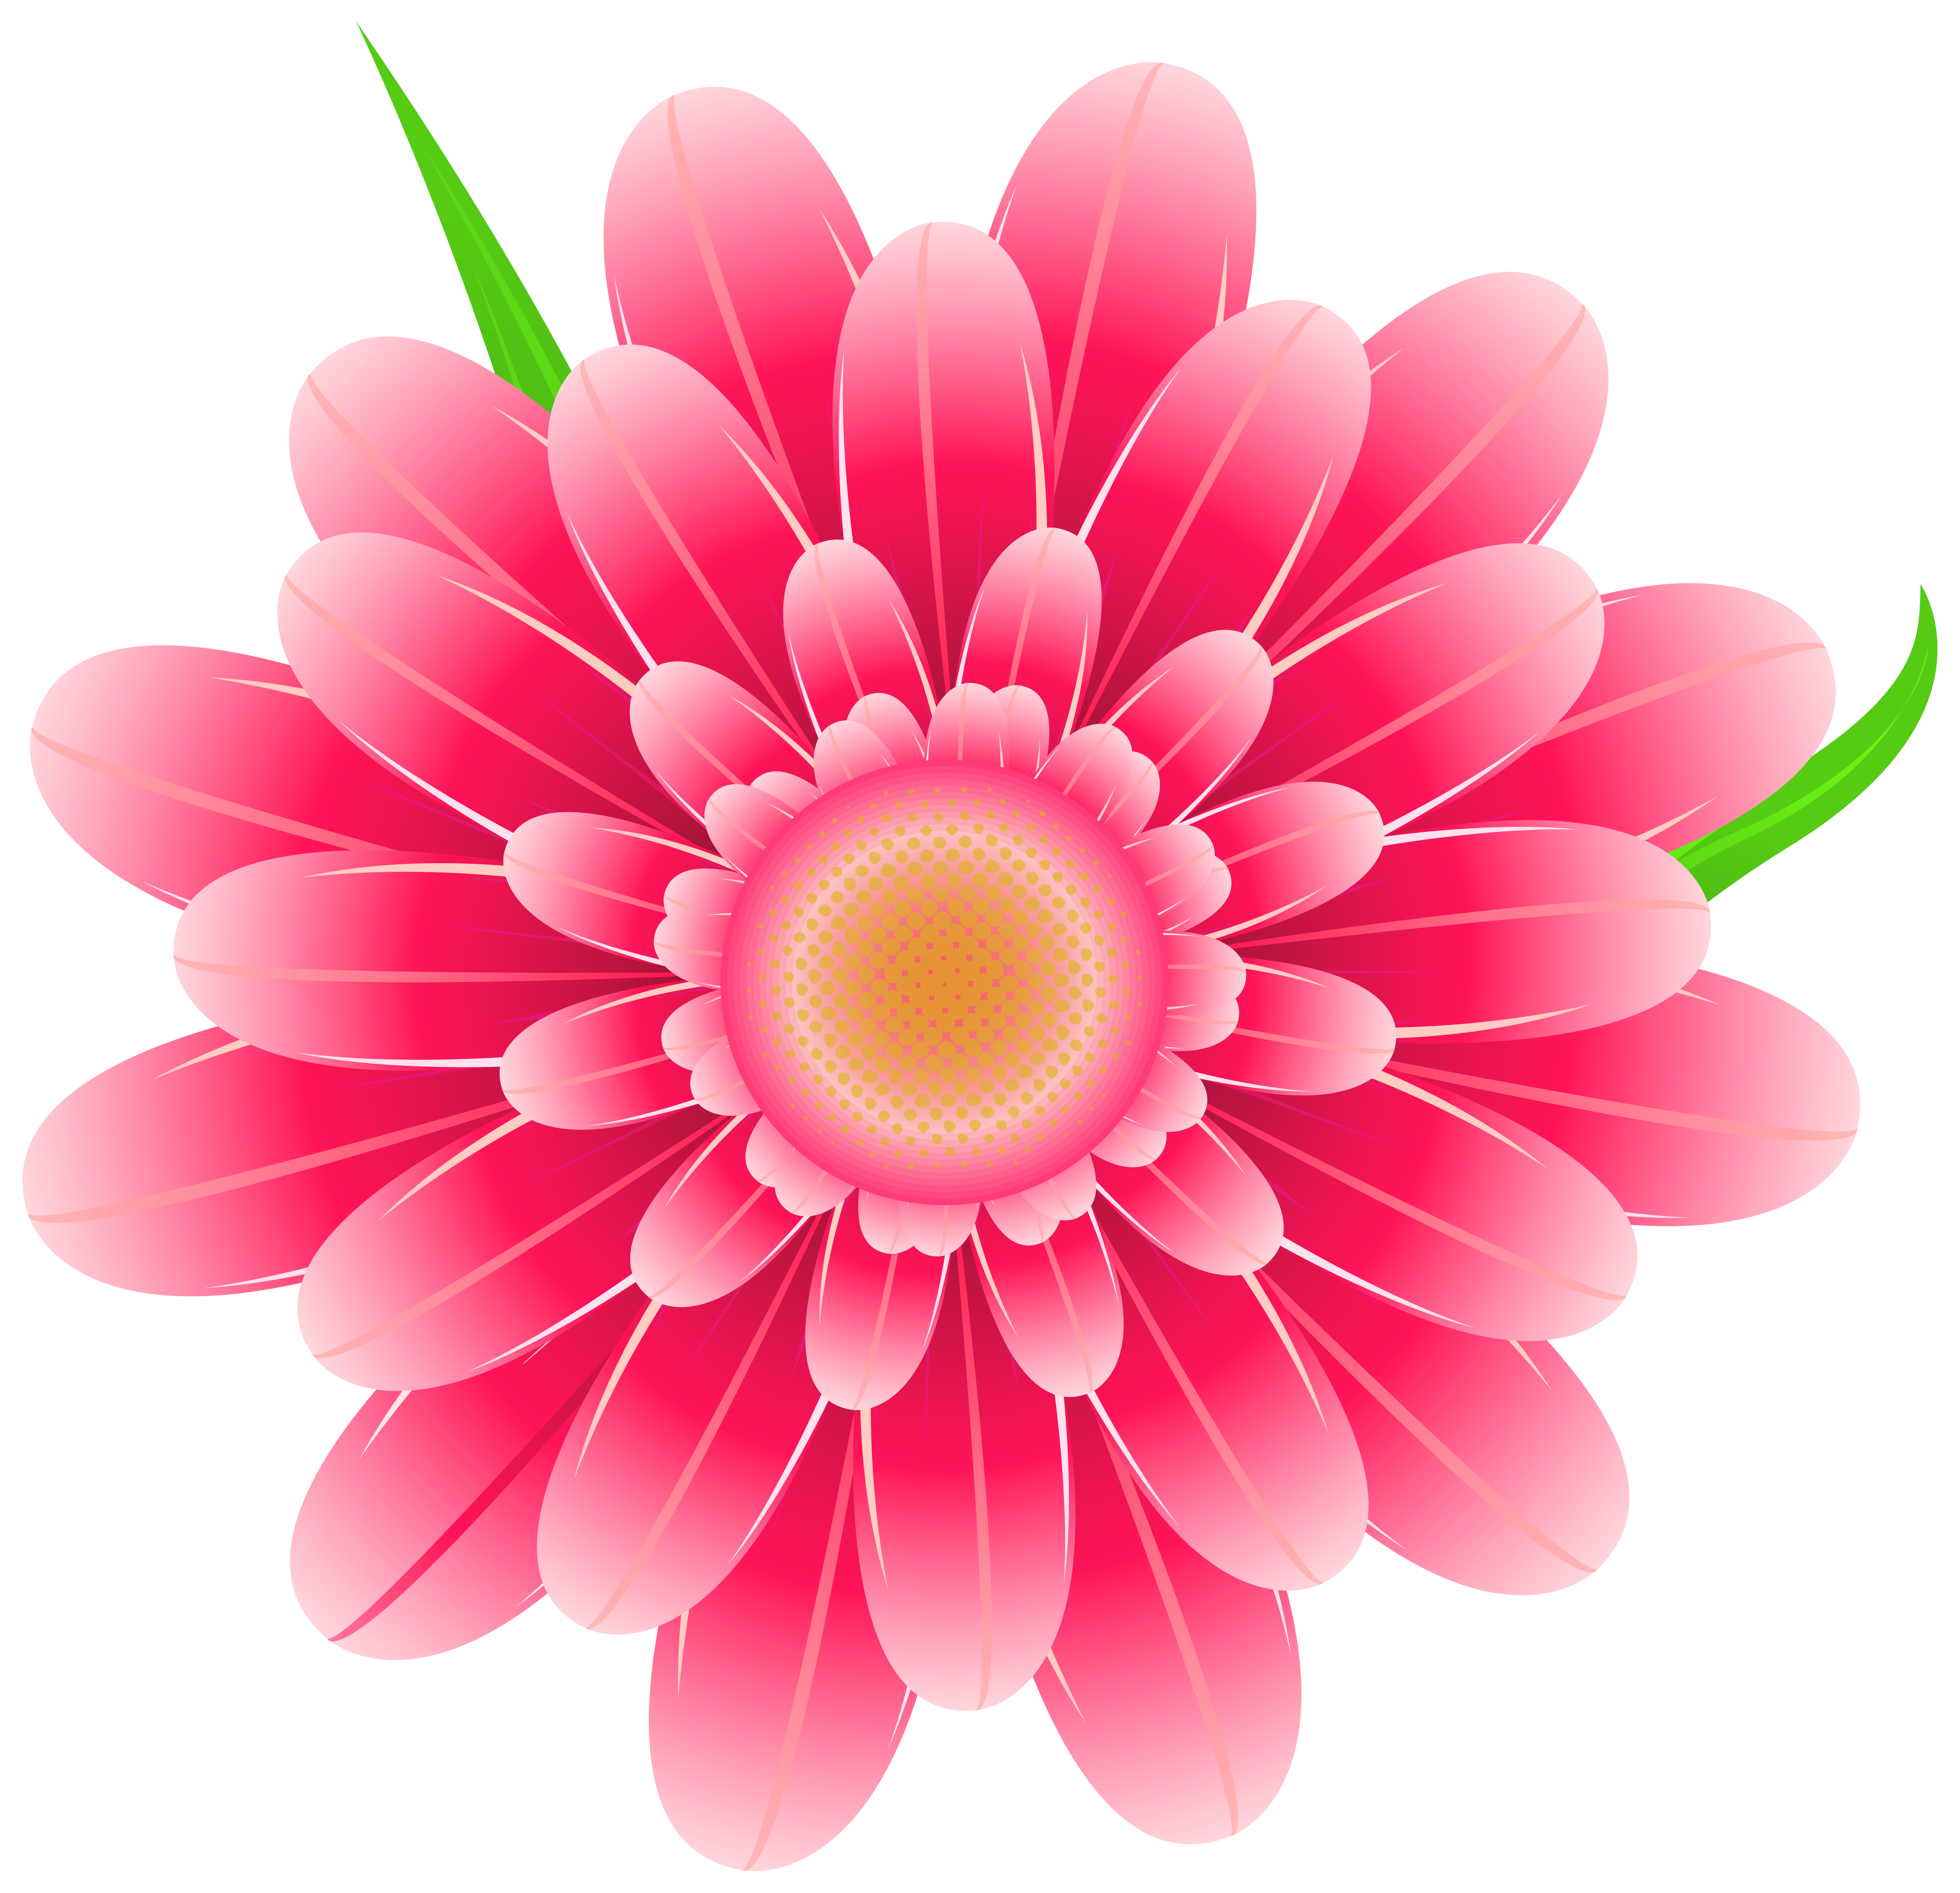 free clip art flowers transparent png clipart images free - HD5910×5708